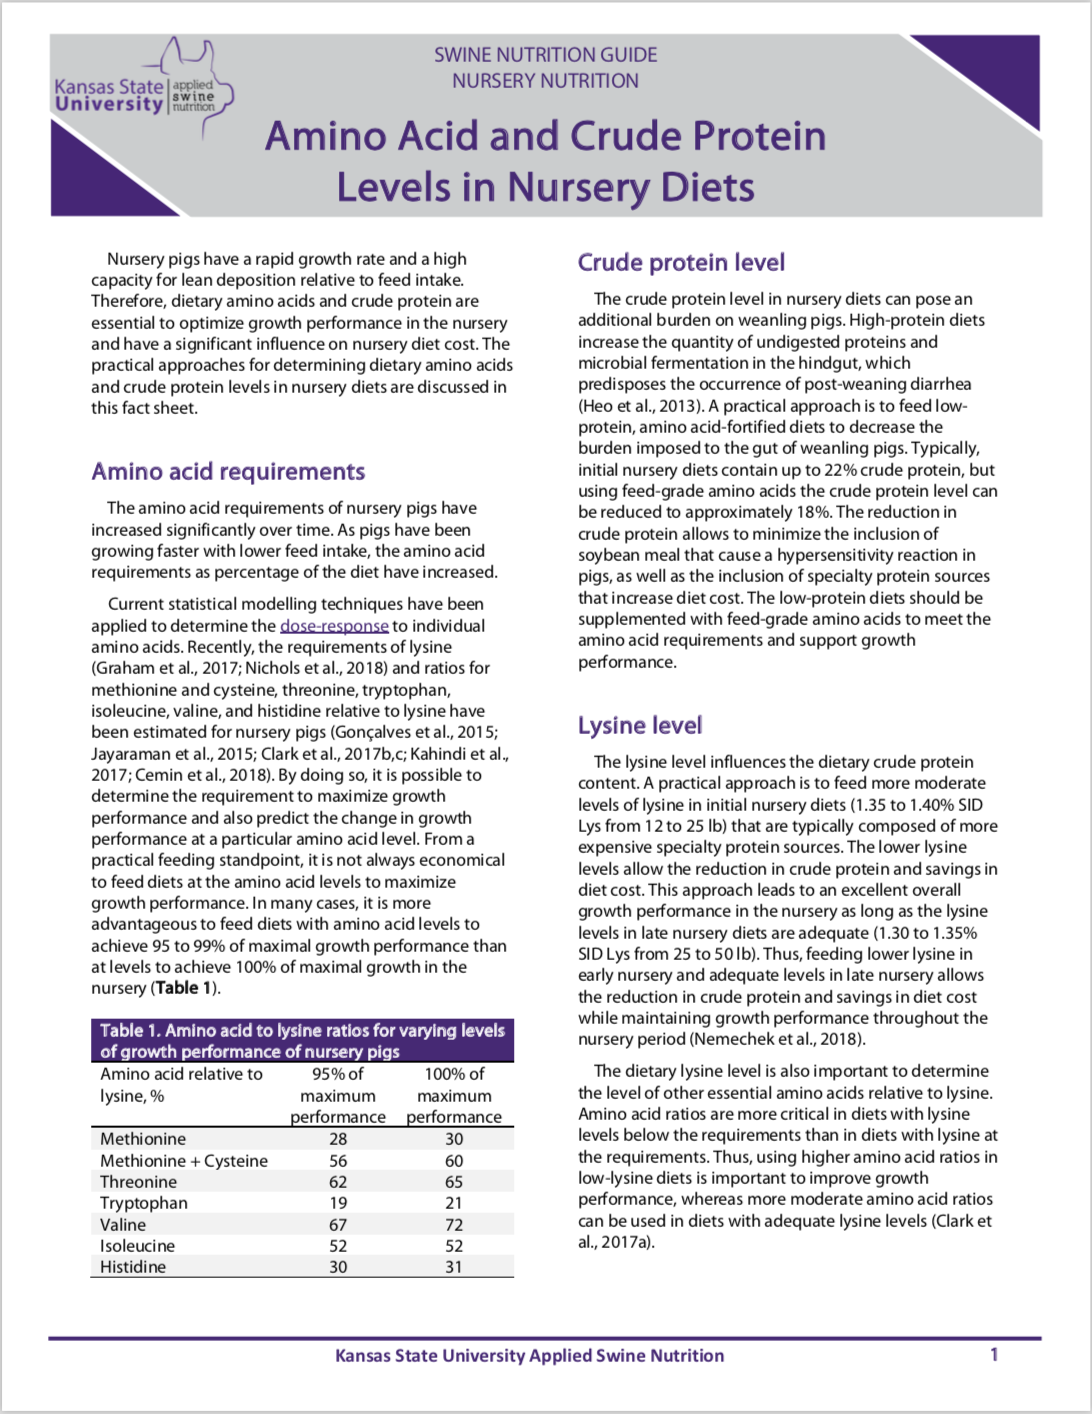 Amino acid and crude protein levels in nursery